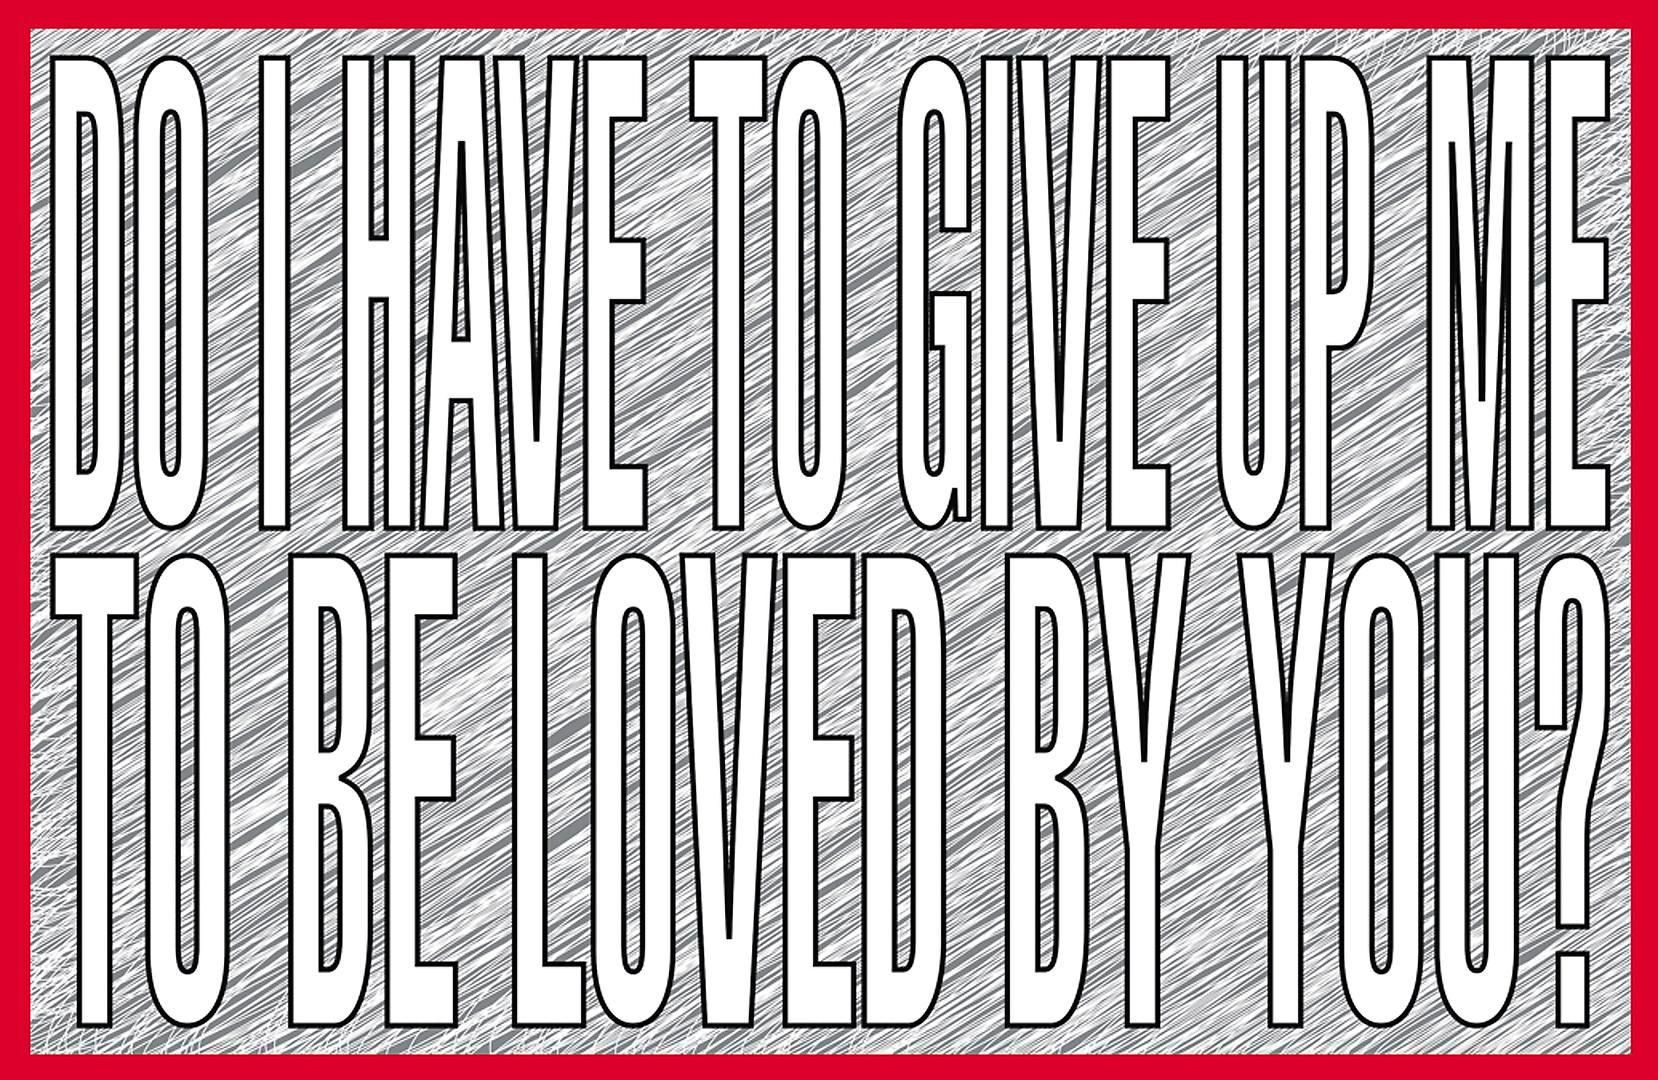 BARBARA KRUGER Do I have to give up me to be loved by you?, 2011